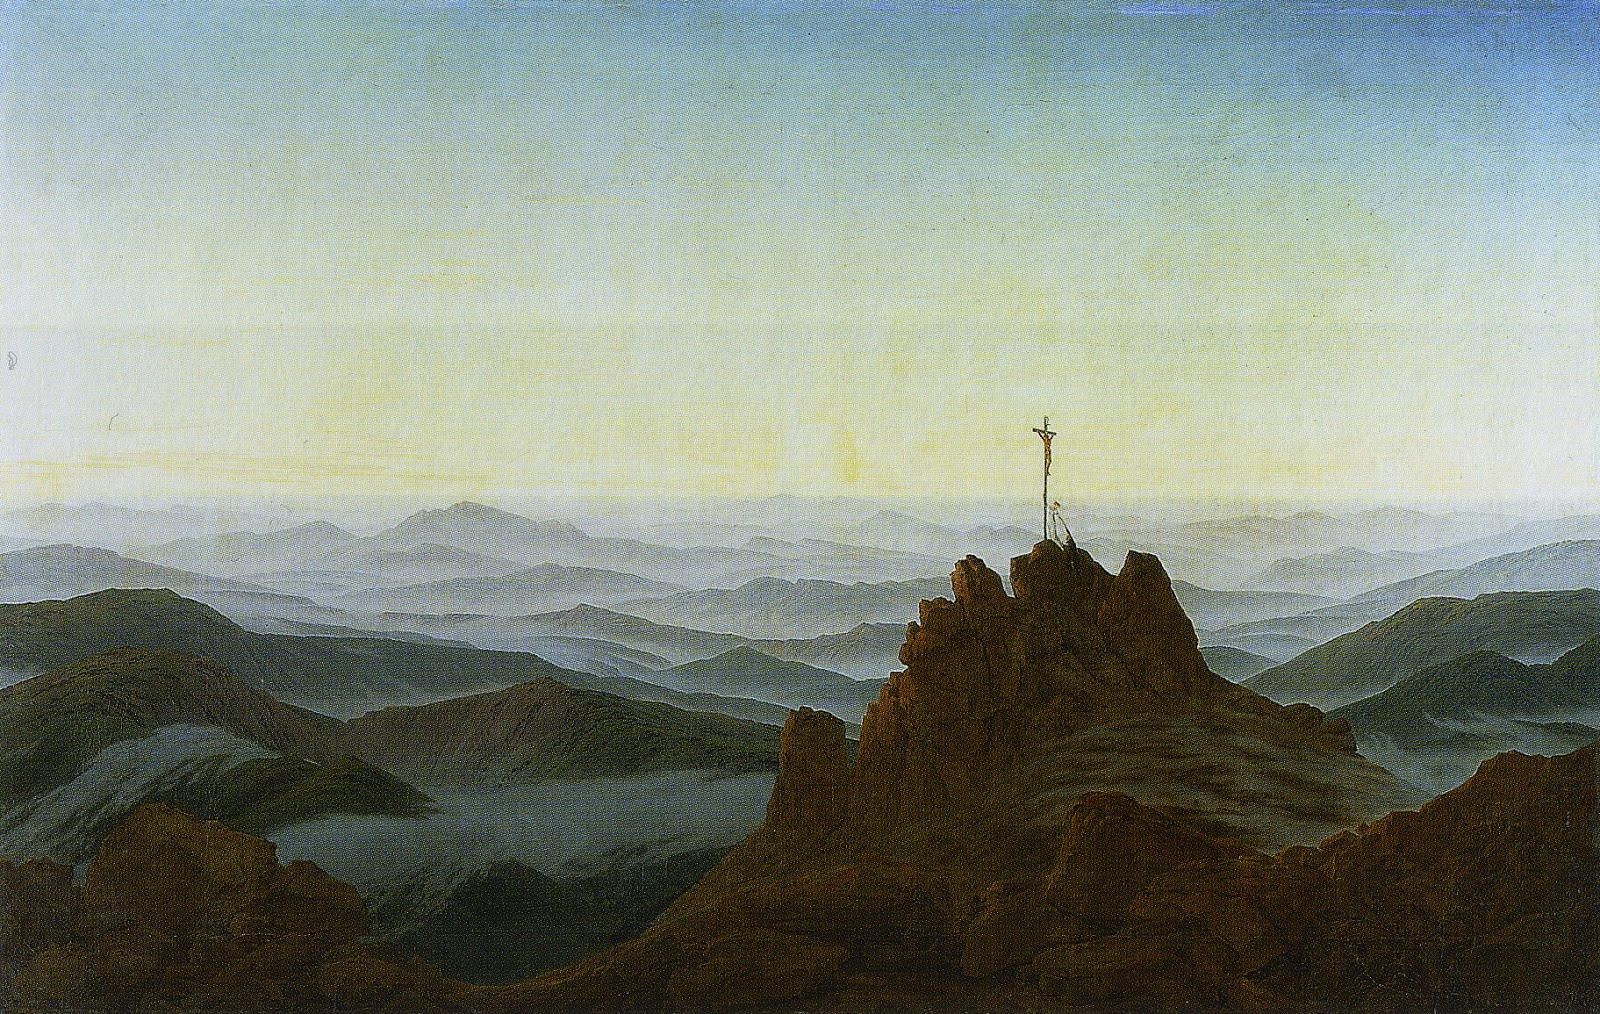 romanticism in the visual arts caspar david friedrich the pictured world within. Black Bedroom Furniture Sets. Home Design Ideas